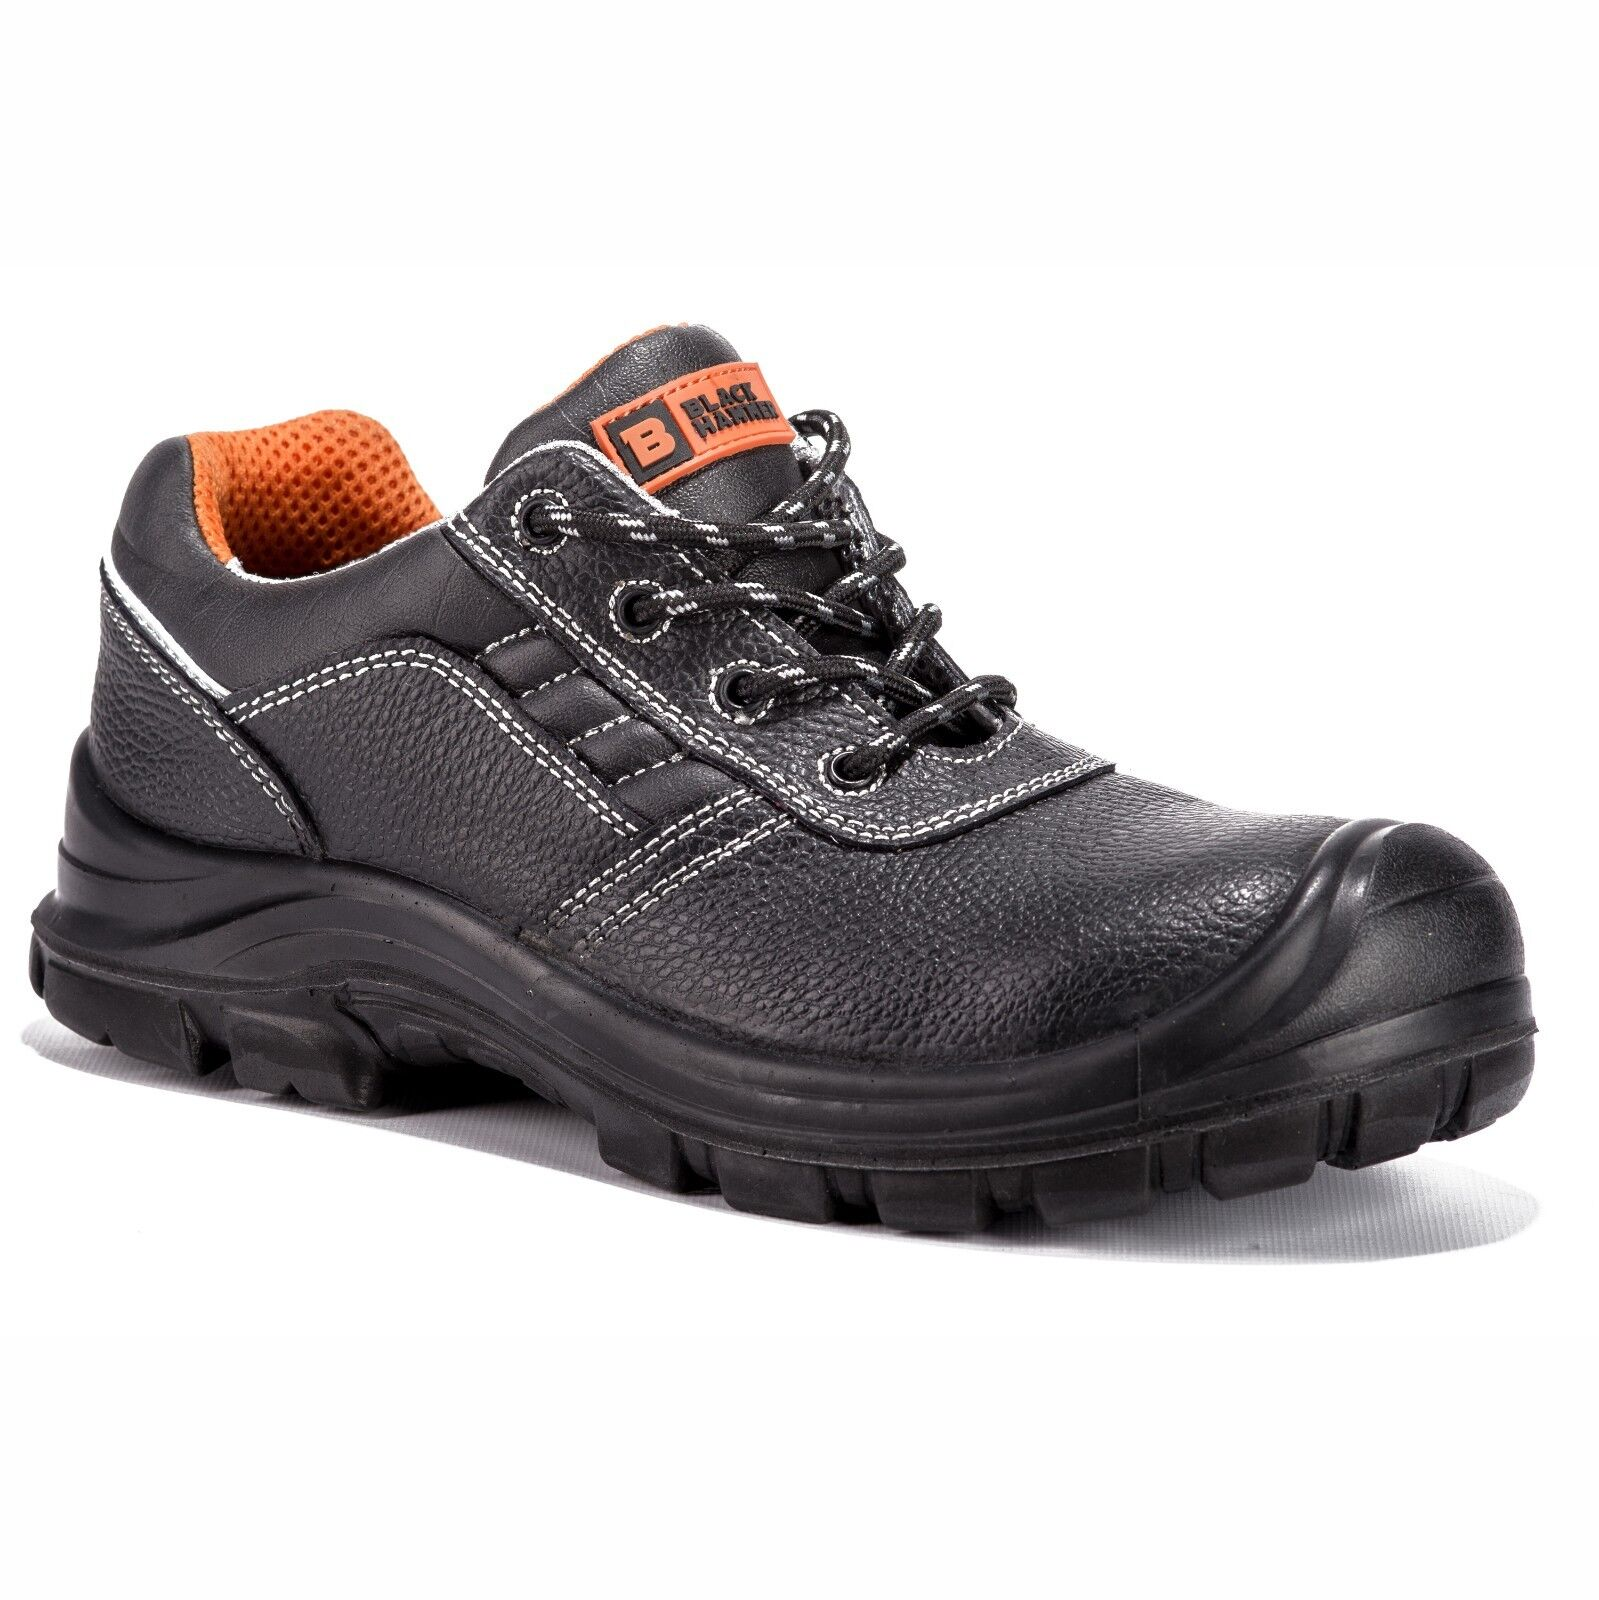 NEW MENS ULTRA LIGHTWEIGHT STEEL TOE CAP SAFETY ANKLE WORK SHOES TRAINERS BOOTS